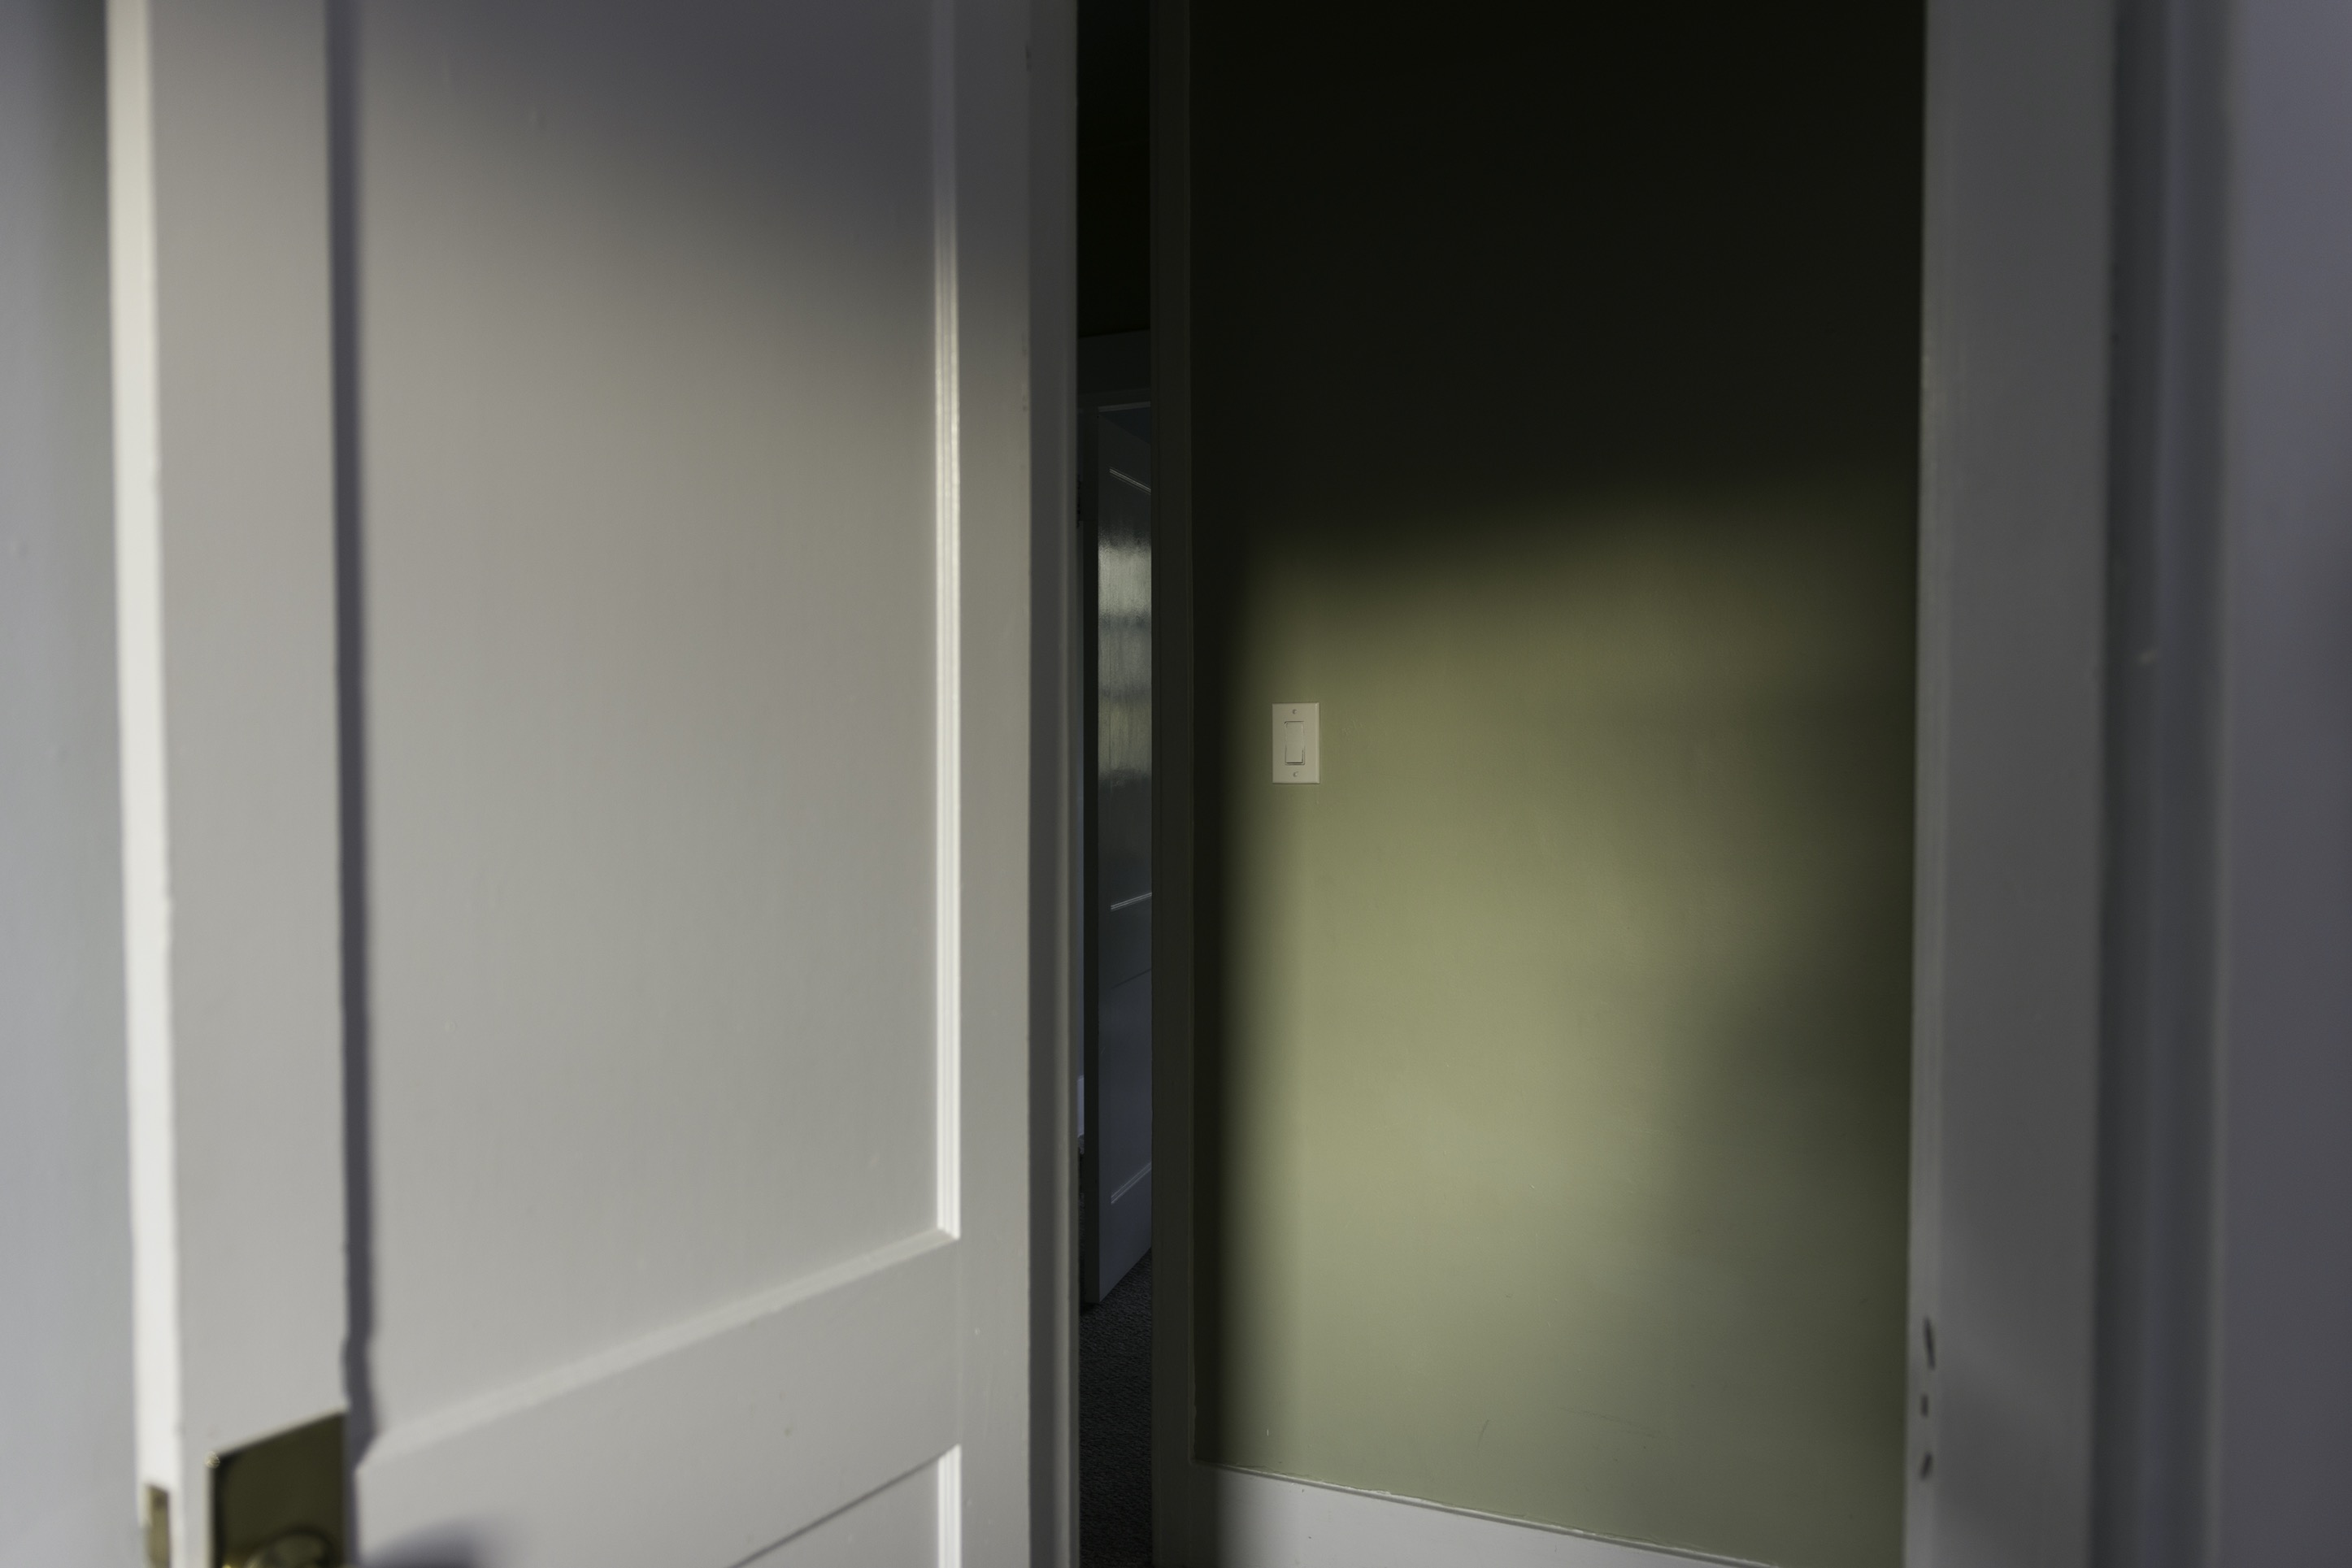 The image peeks down a hallway diagonally, through a few doors. The wall is bathed in soft, comforting light.